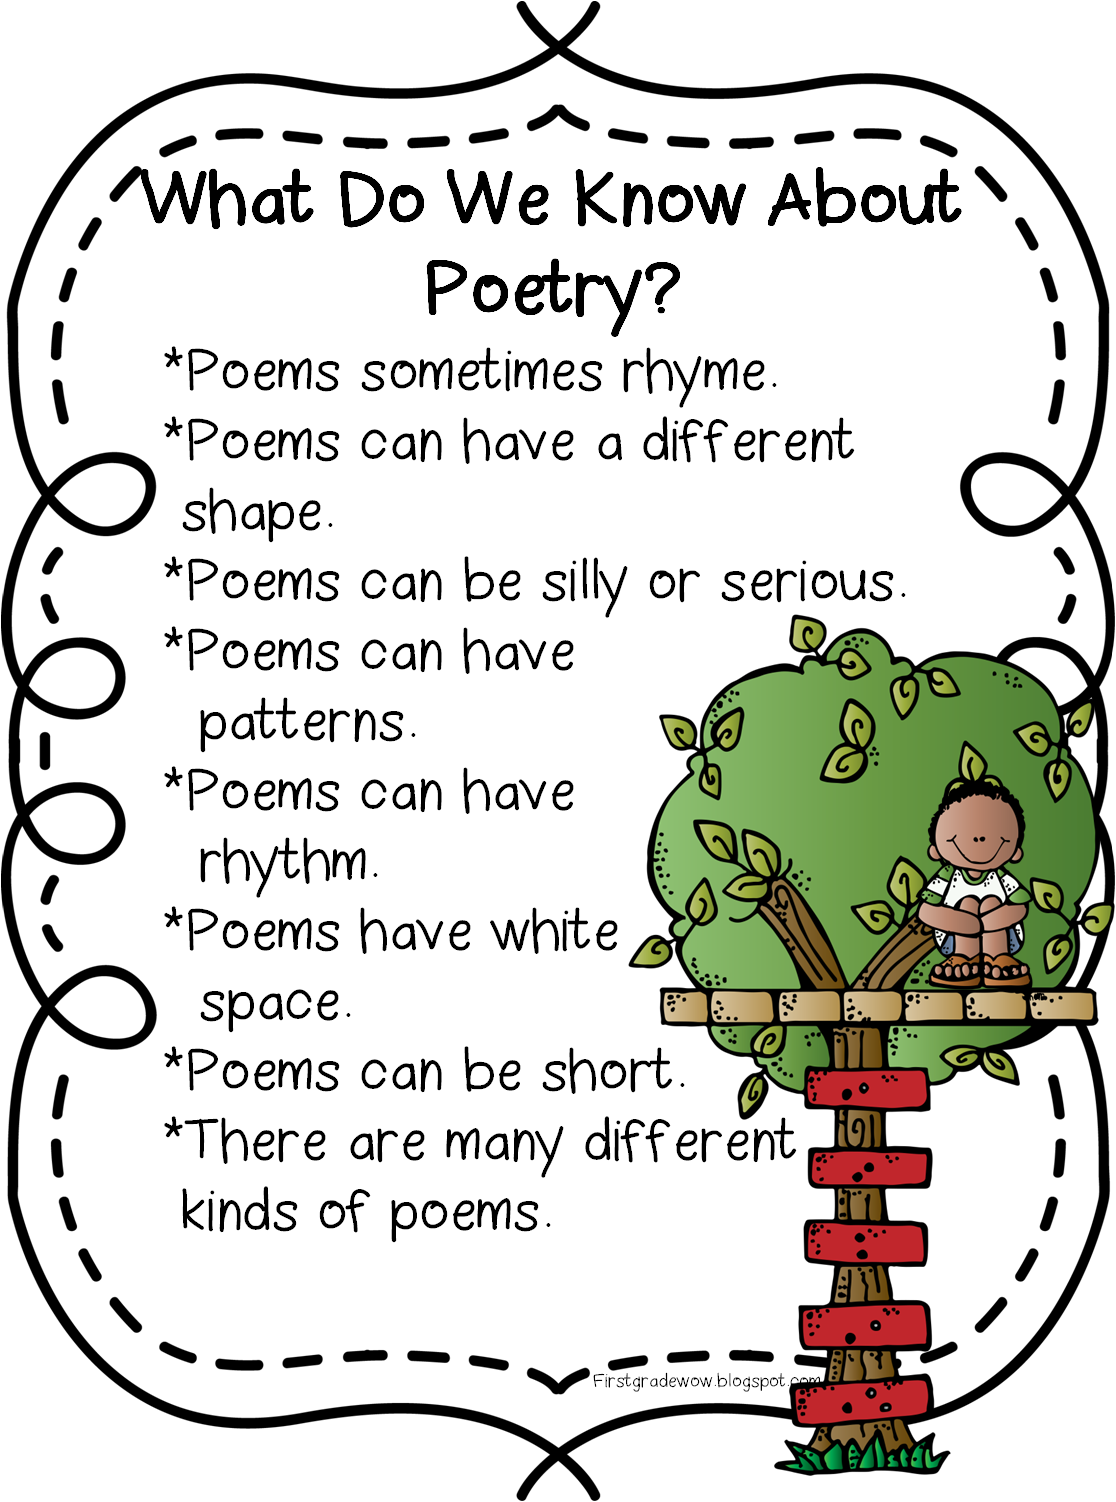 First Grade Wow Happy Poetry Month